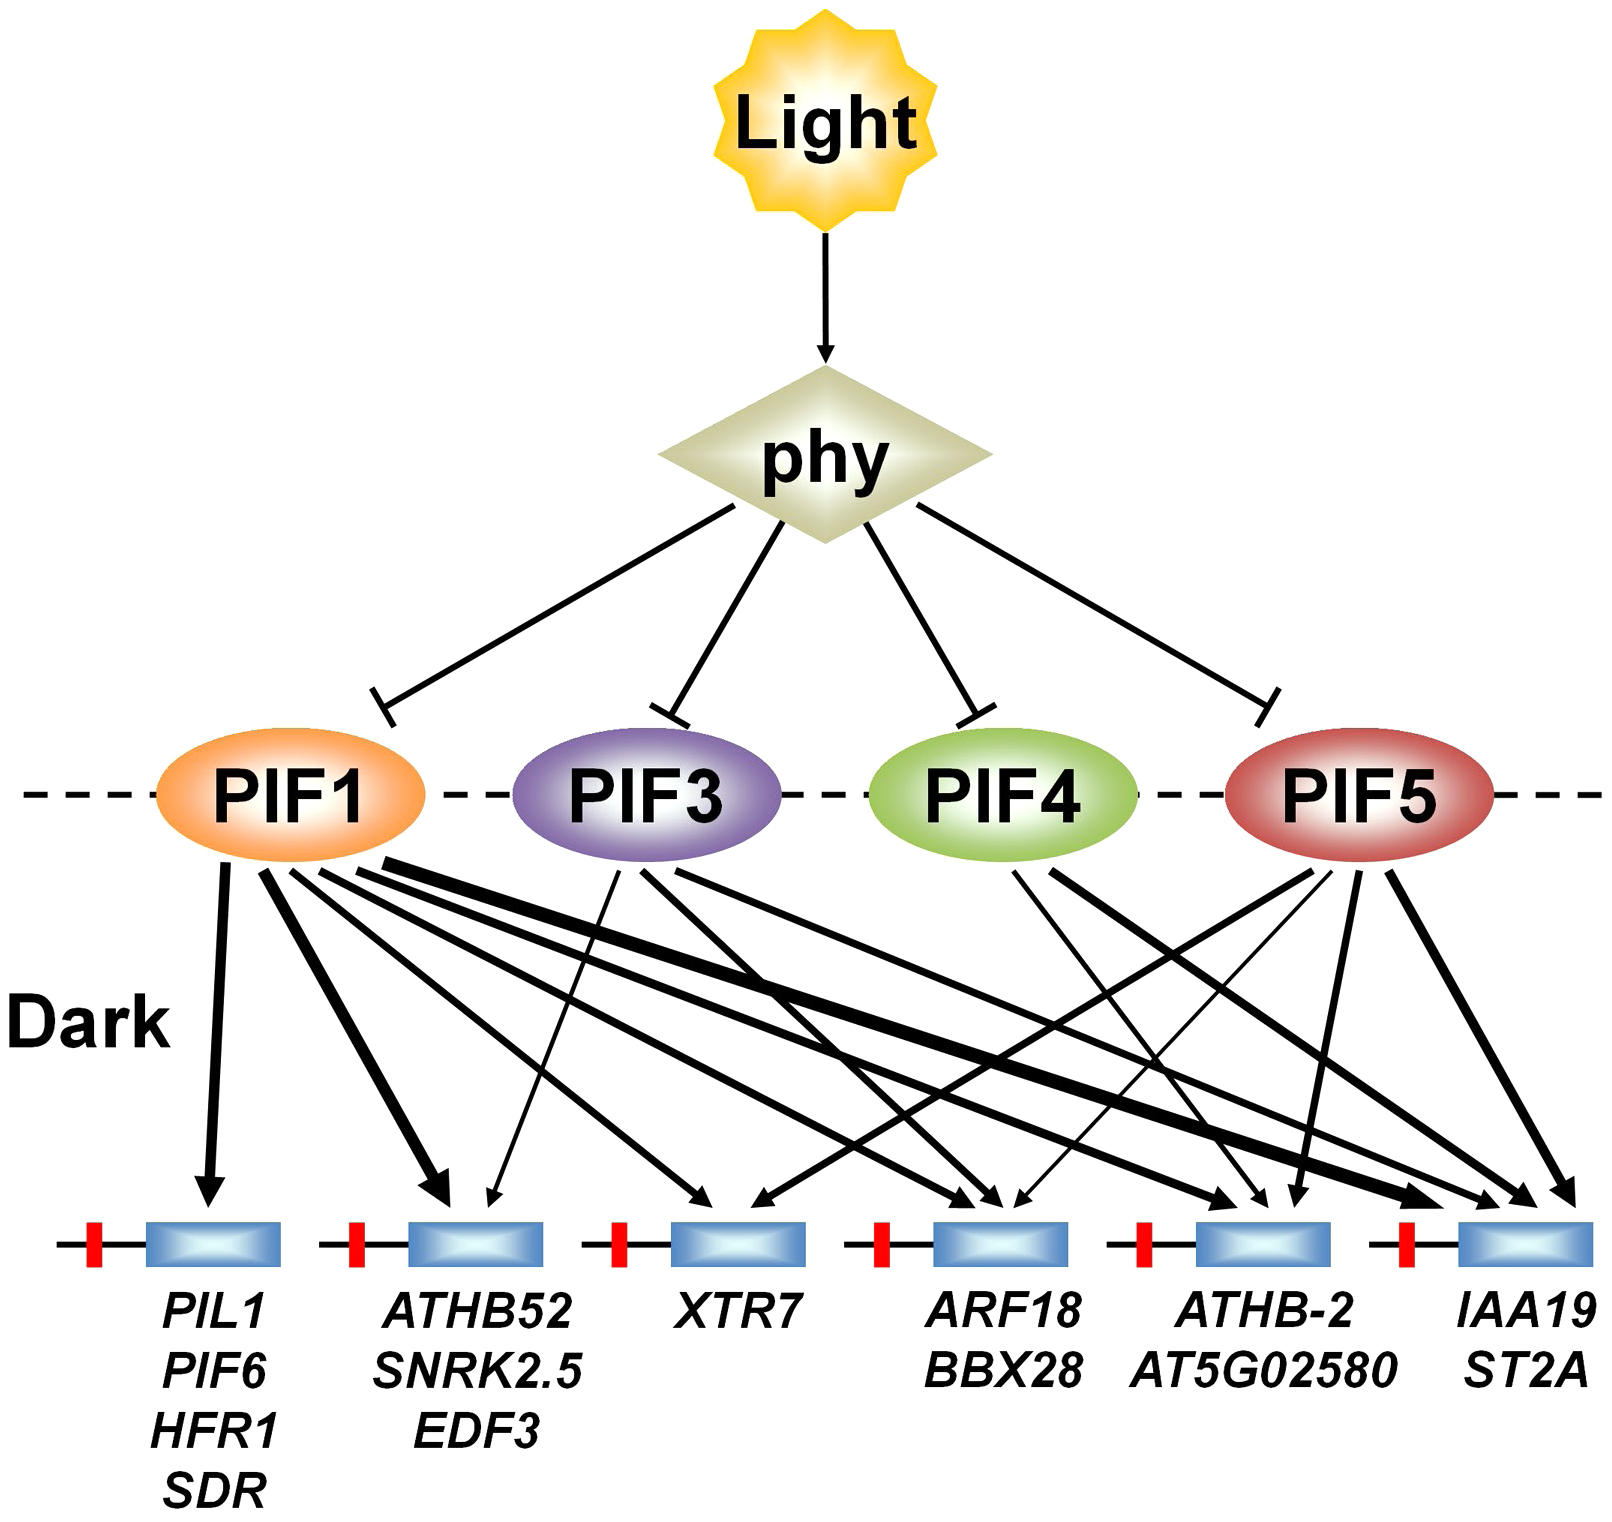 PIFs direct differential light-signal channeling to the phy-regulated transcriptional network.